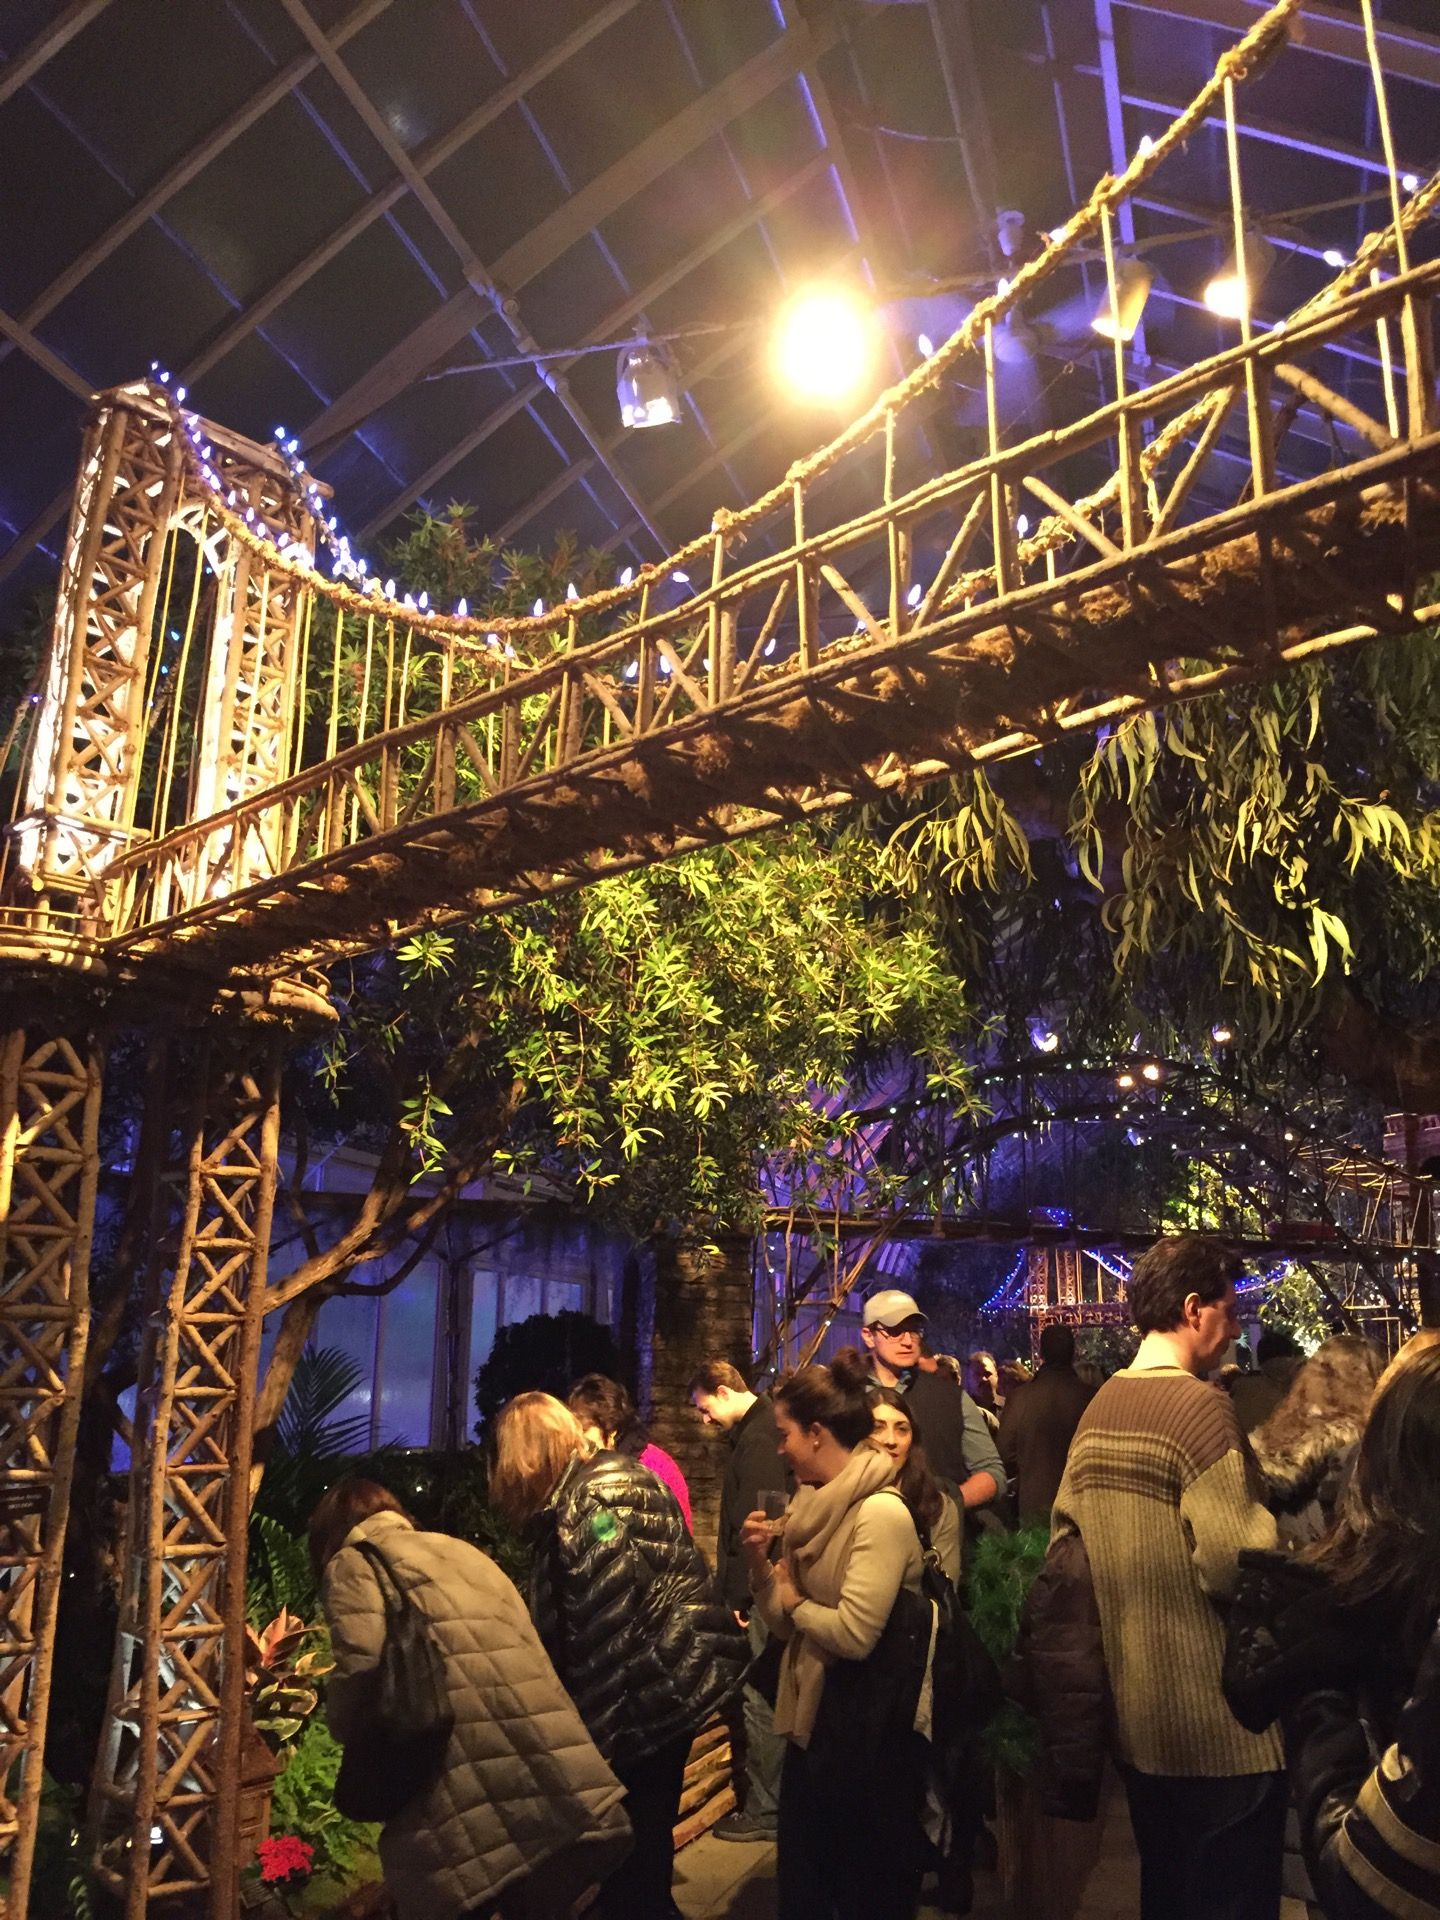 Holiday Train Show At The New York Botanical Garden in Bronx, NY ...